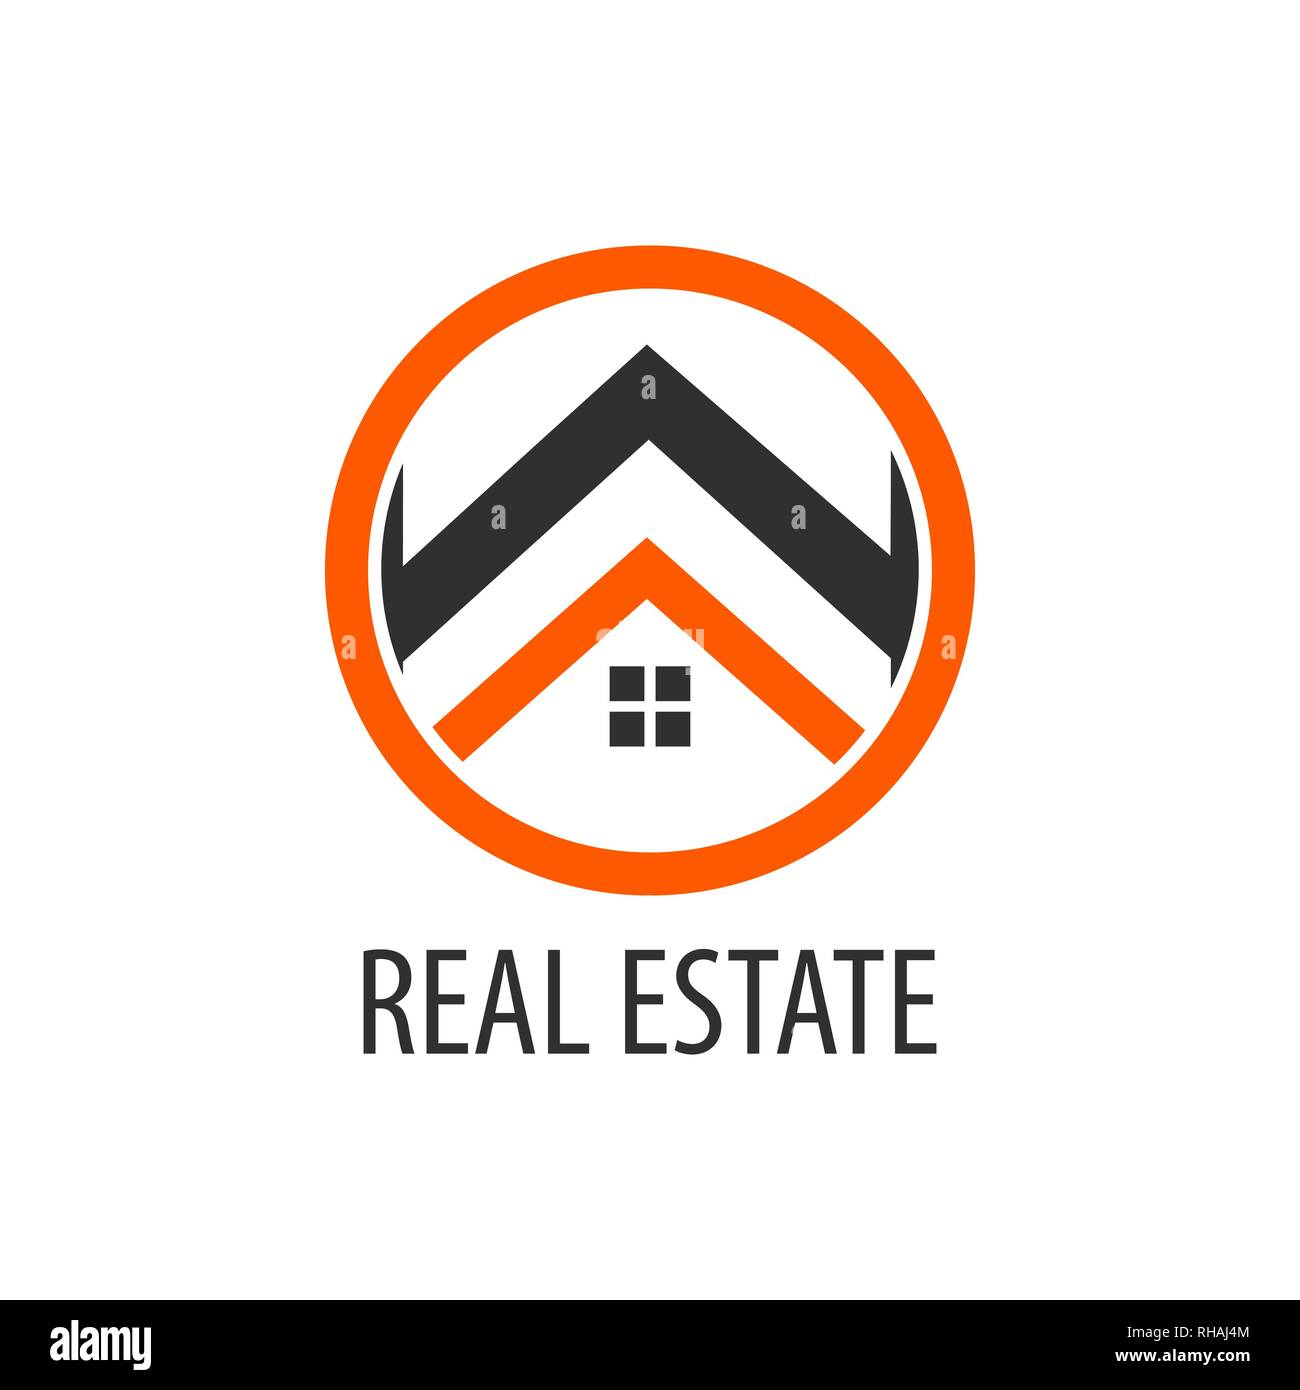 Circle real estate logo concept design. Symbol graphic template element vector - Stock Image